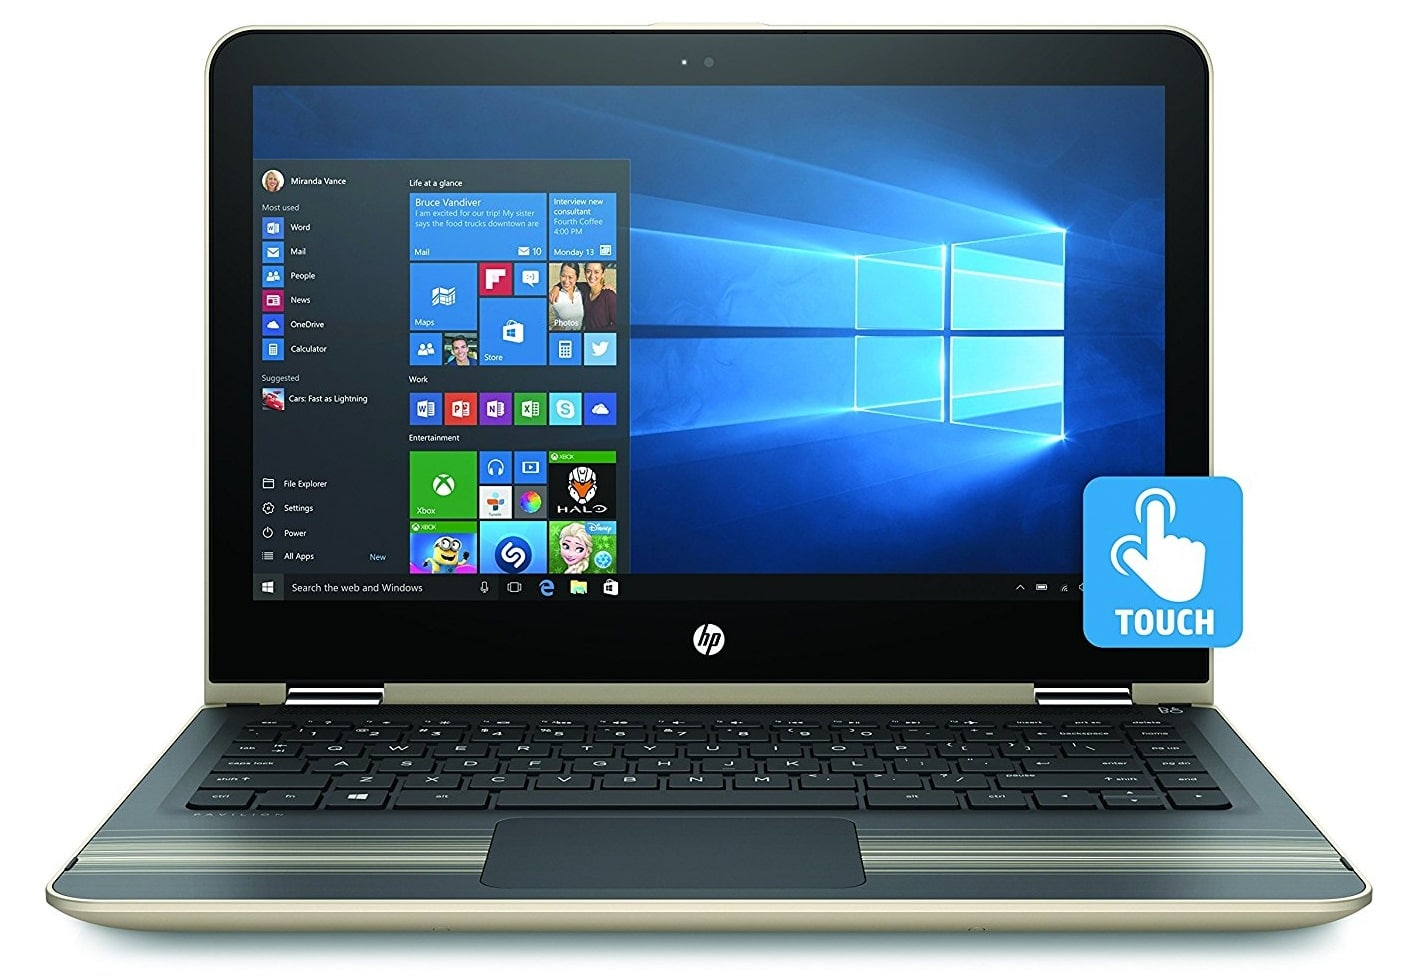 HP Pavilion x360 best laptop under 700 pounds uk